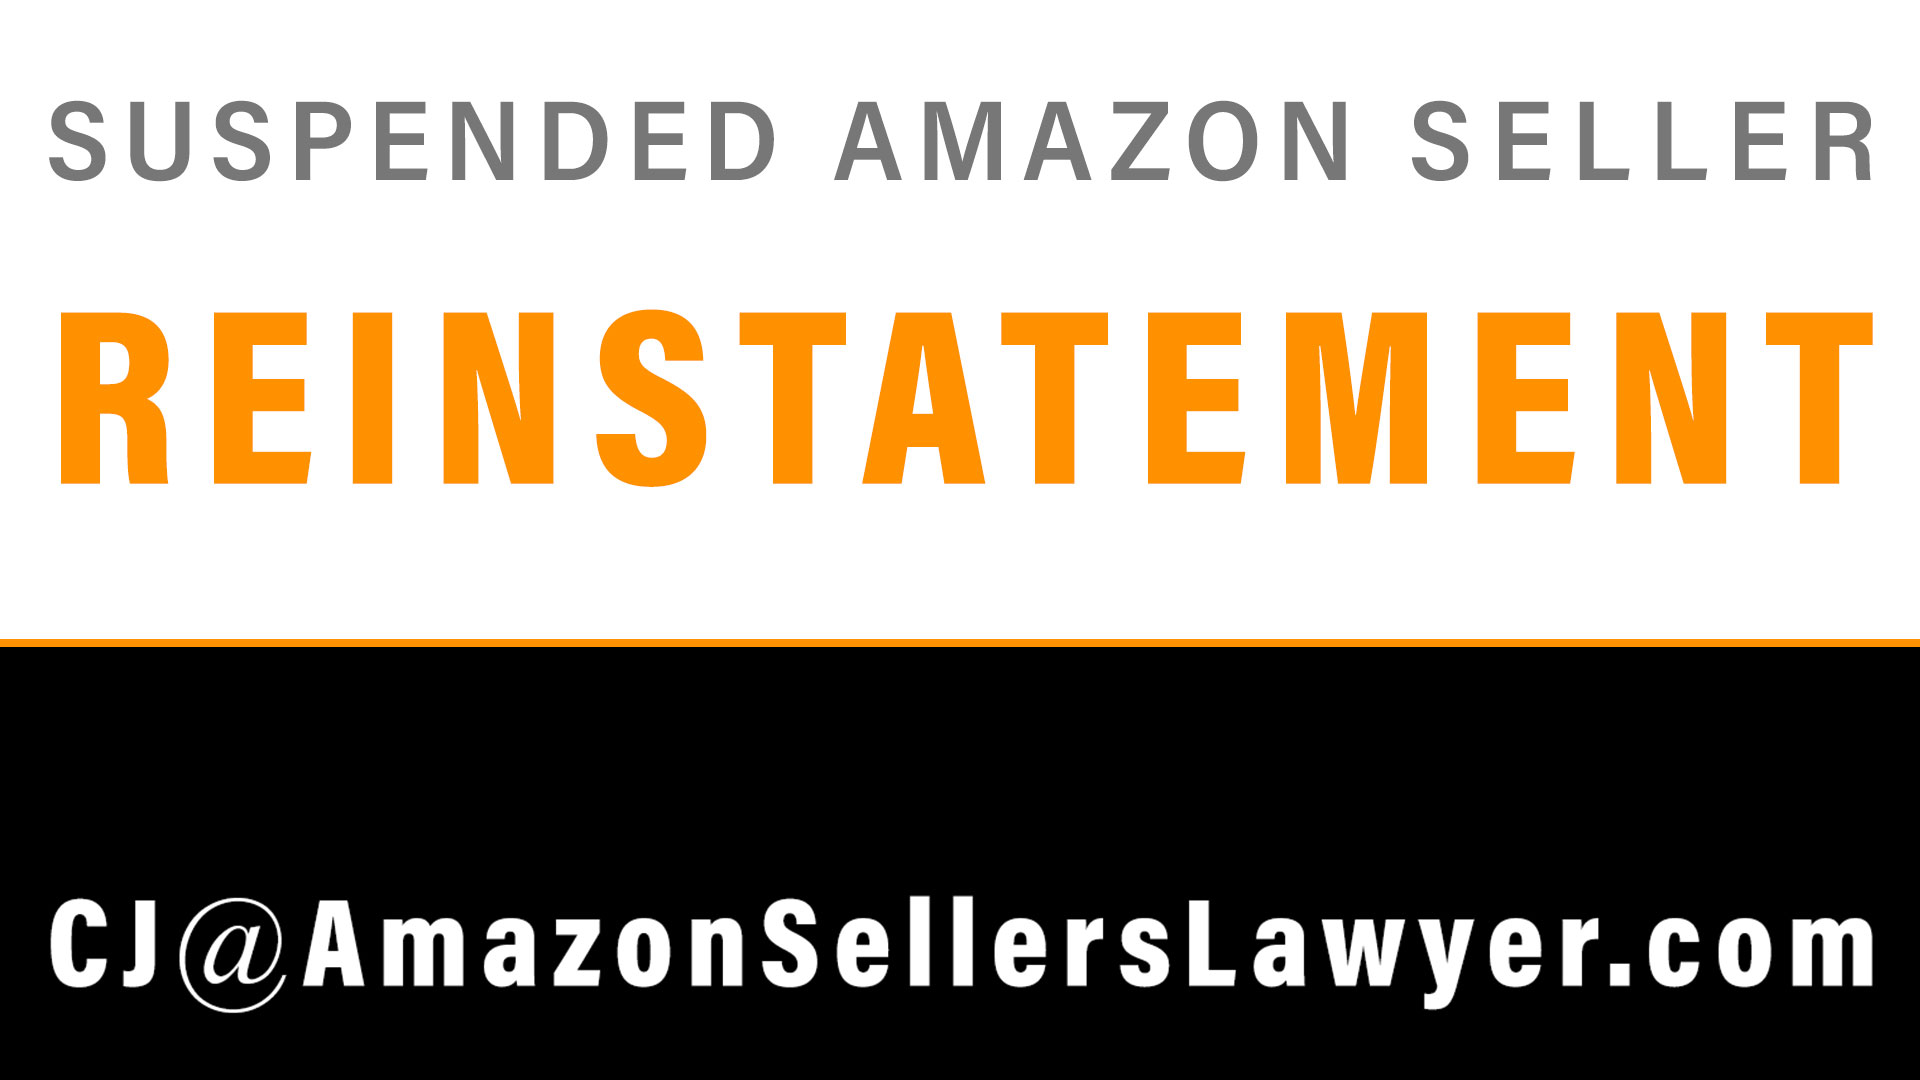 Suspended Amazon Seller Reinstated